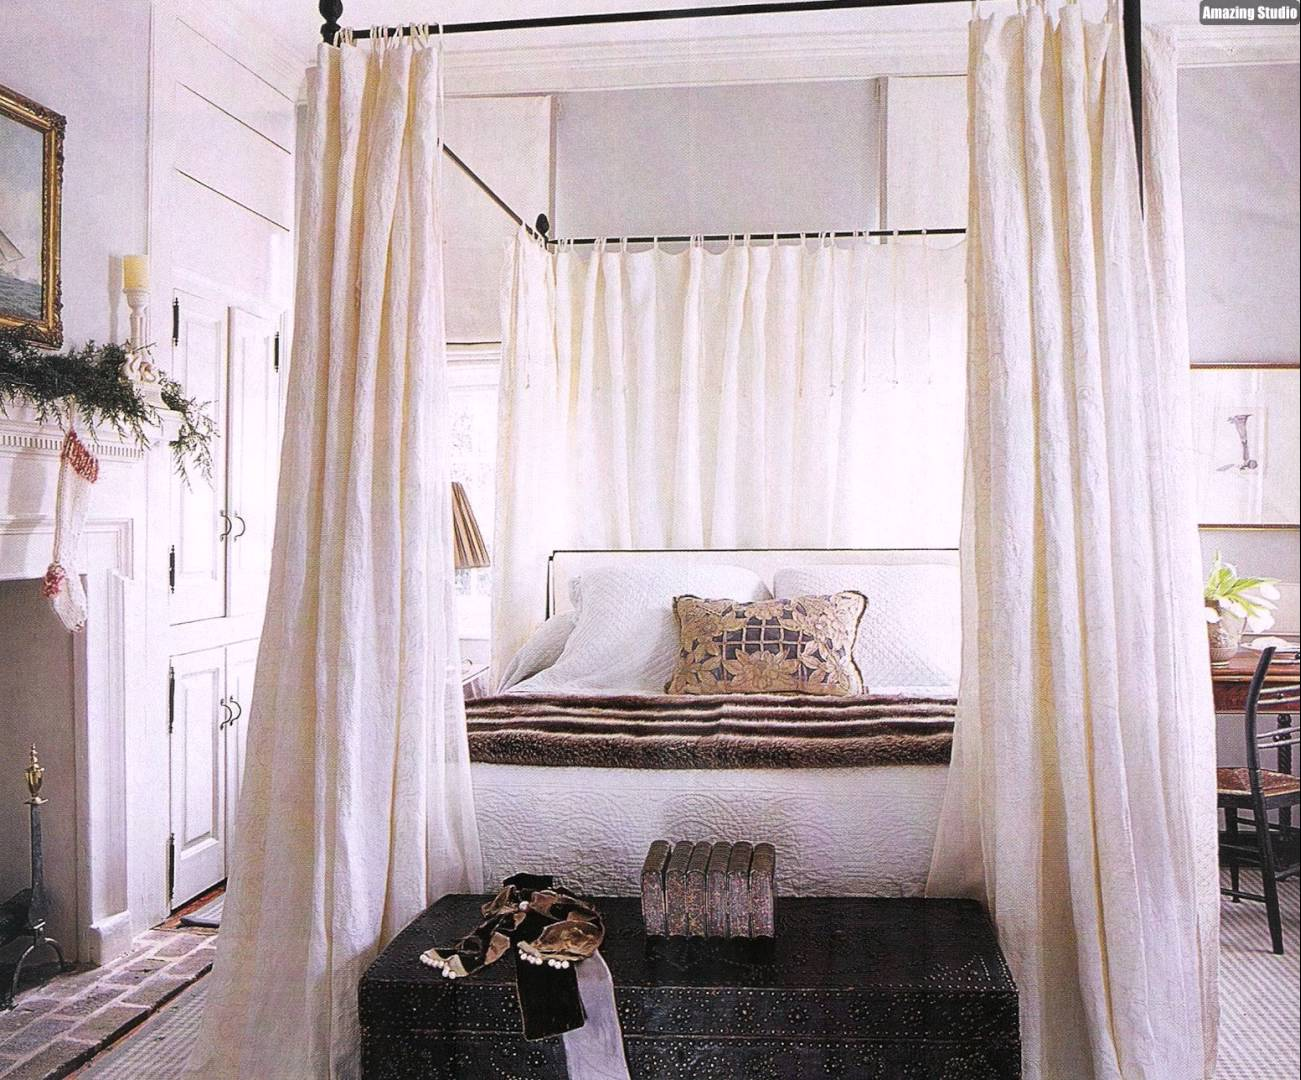 Wide Fireplace and DIY Canopy Bed for Traditional Bedroom with Wooden Table and Chair & DIY Canopy Bed from PVC Pipes - MidCityEast